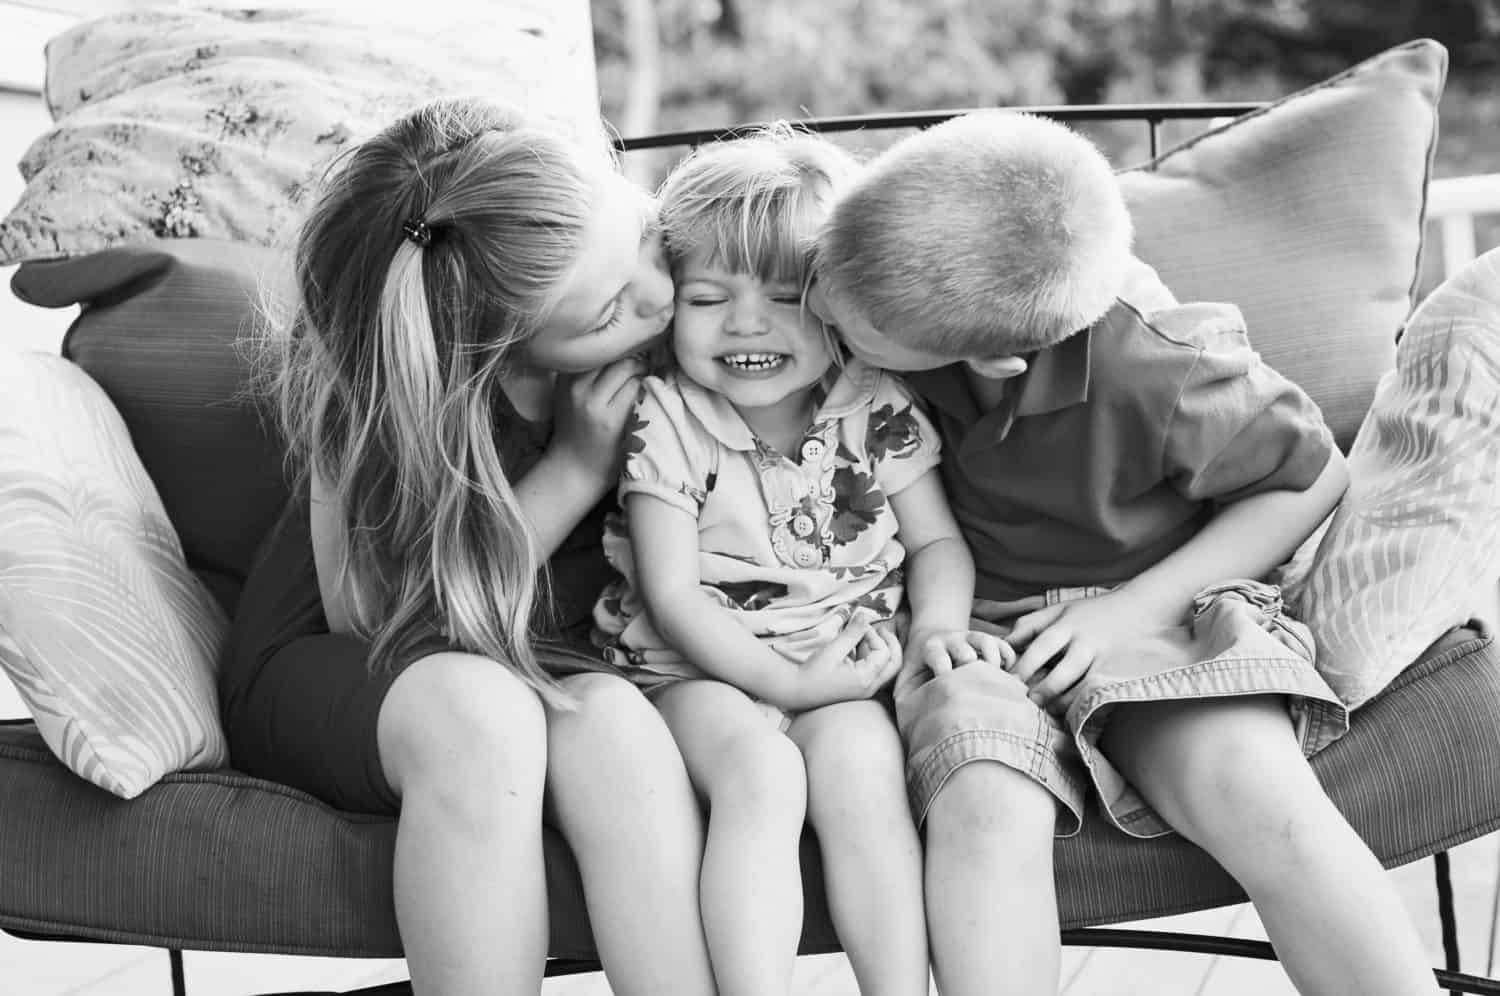 Black and white photo of three siblings sitting on a bench, two of them kissing the cheek of the middle sibling